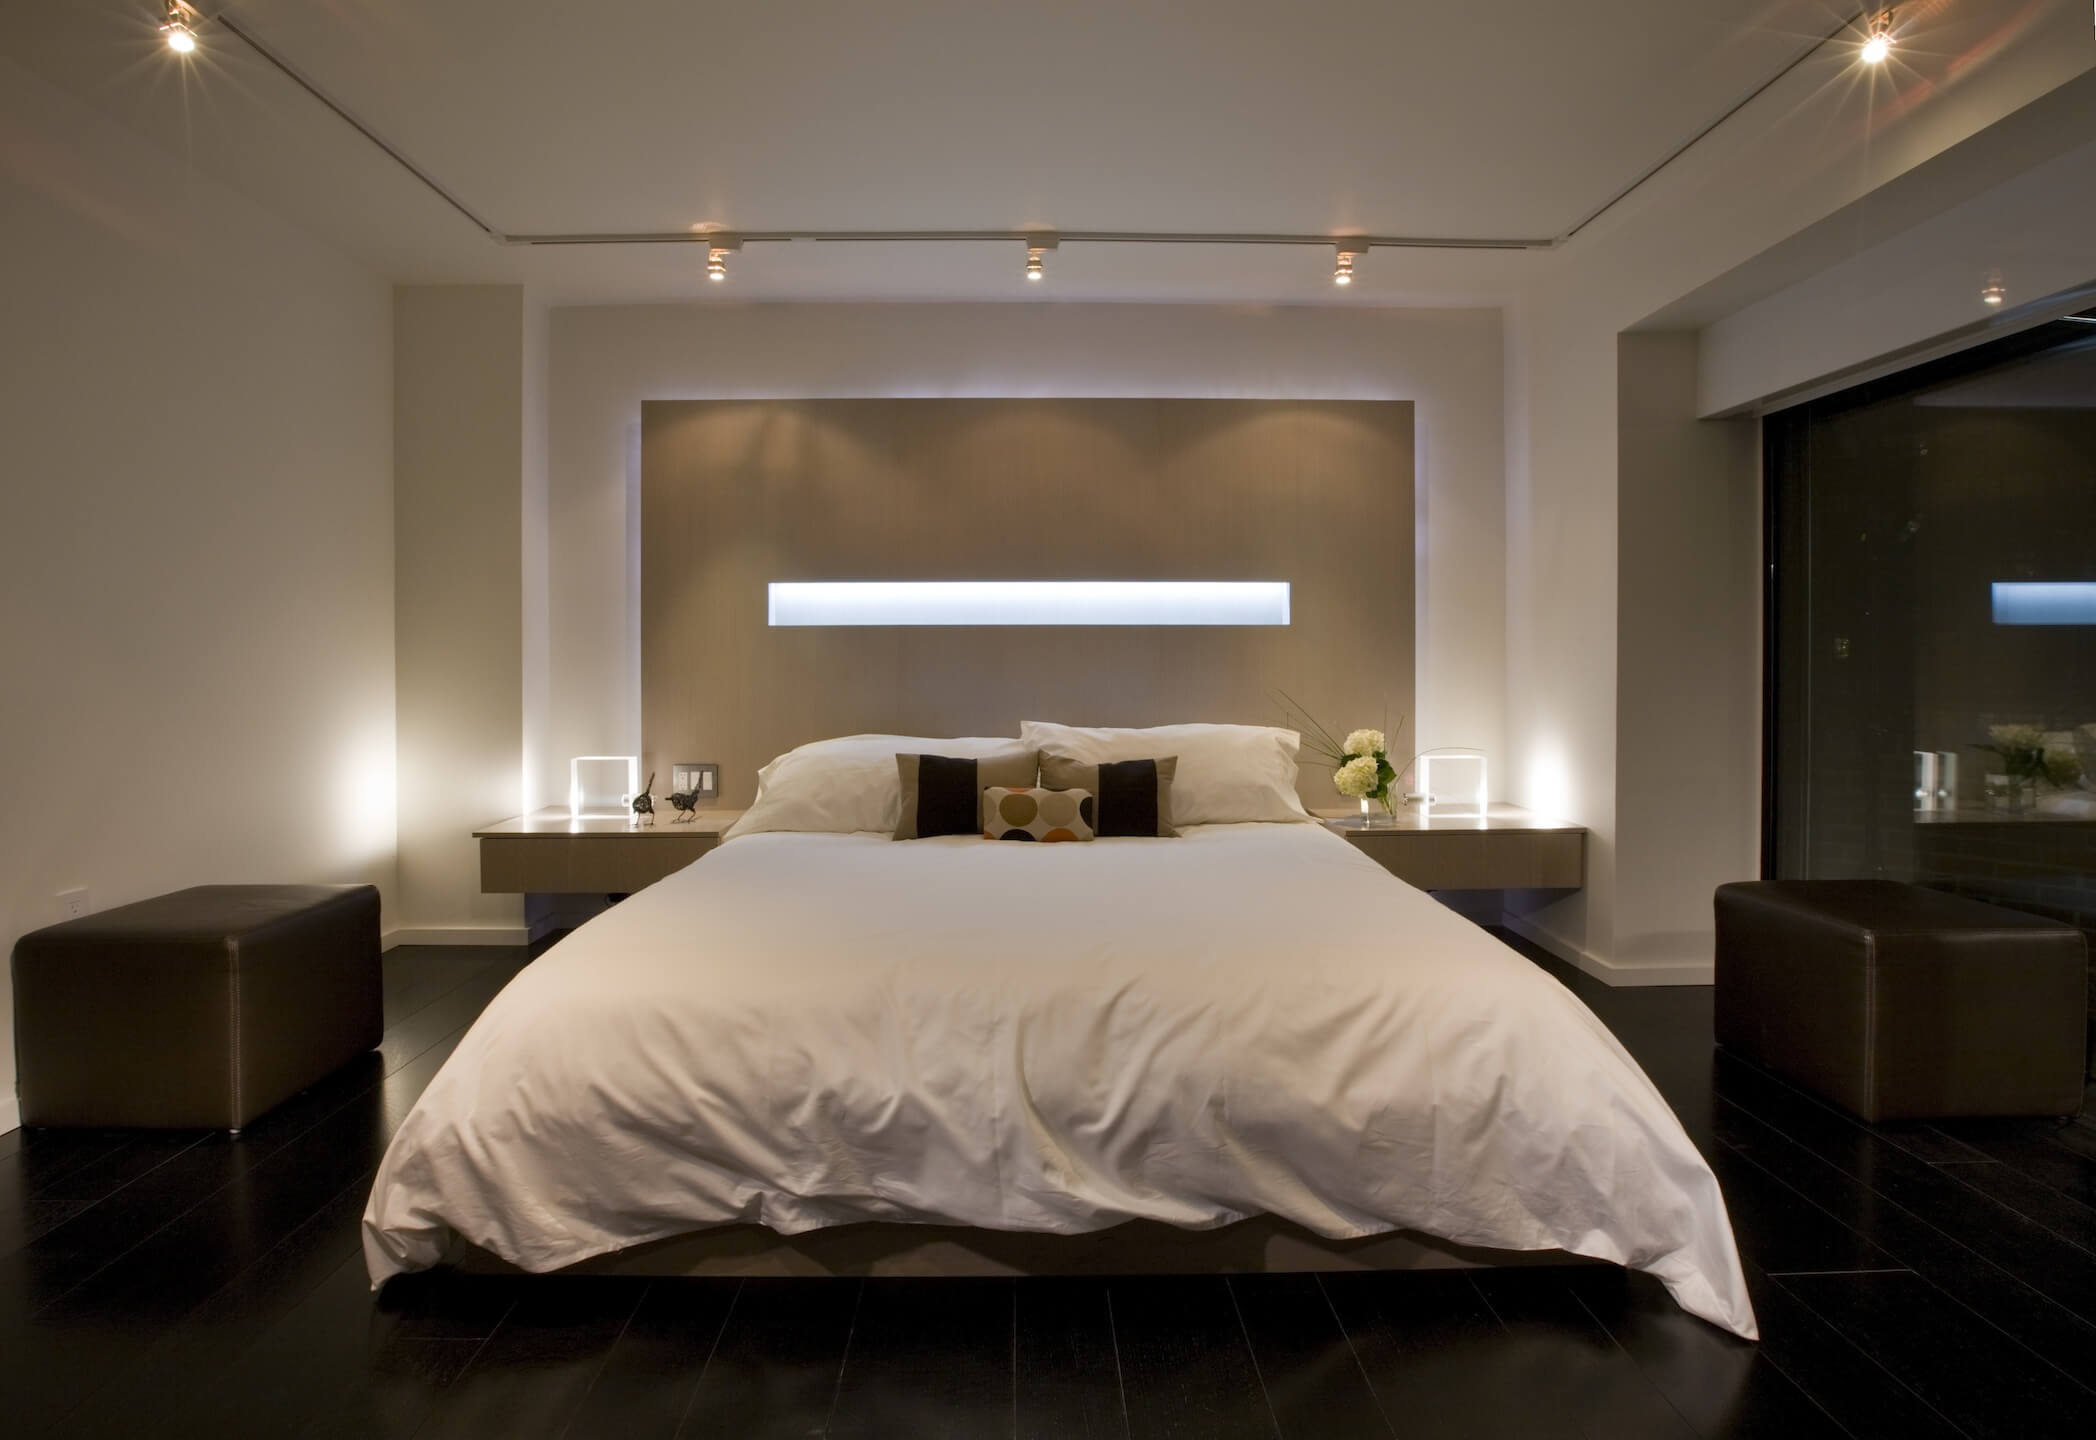 Head-on view of primary bedroom, showcasing white-covered bed in front of monolithic wall detail containing horizontal light strip. Large dark leather ottomans stand on each side.